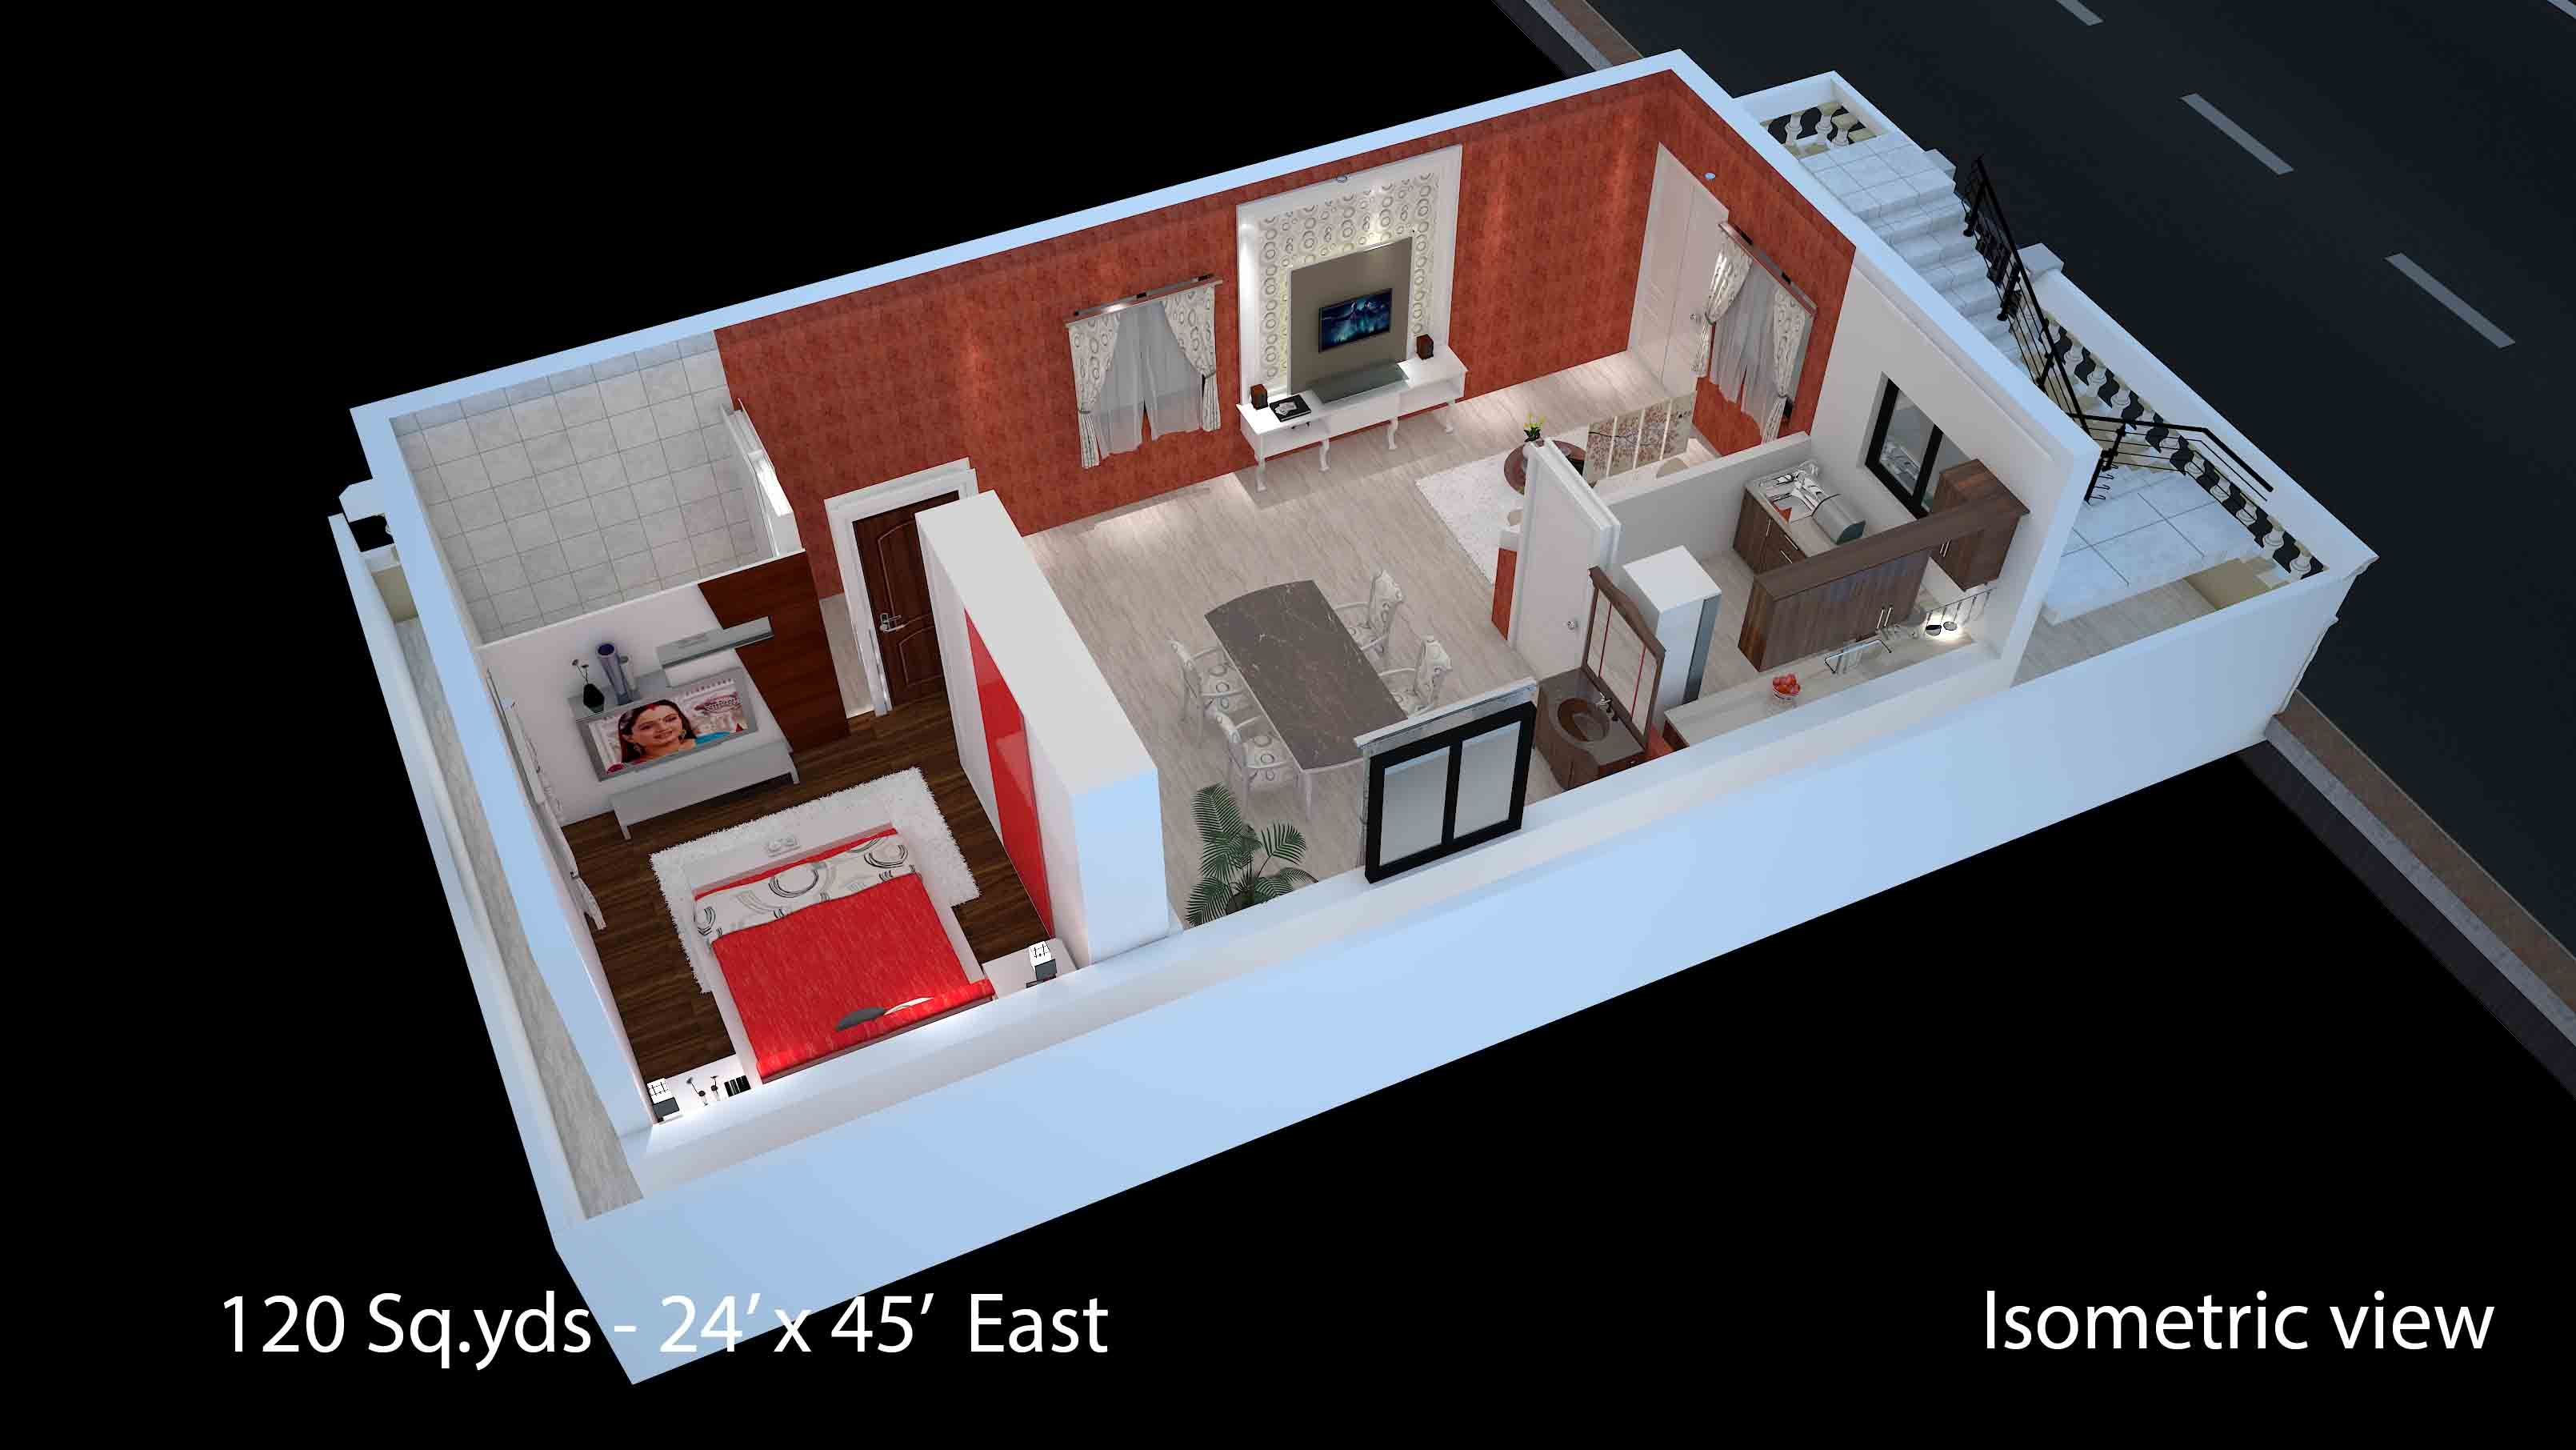 120 Sqyrds 24x45 Sqfts West Facing 1bhk House Plans House Plans House Interior Decor How To Plan